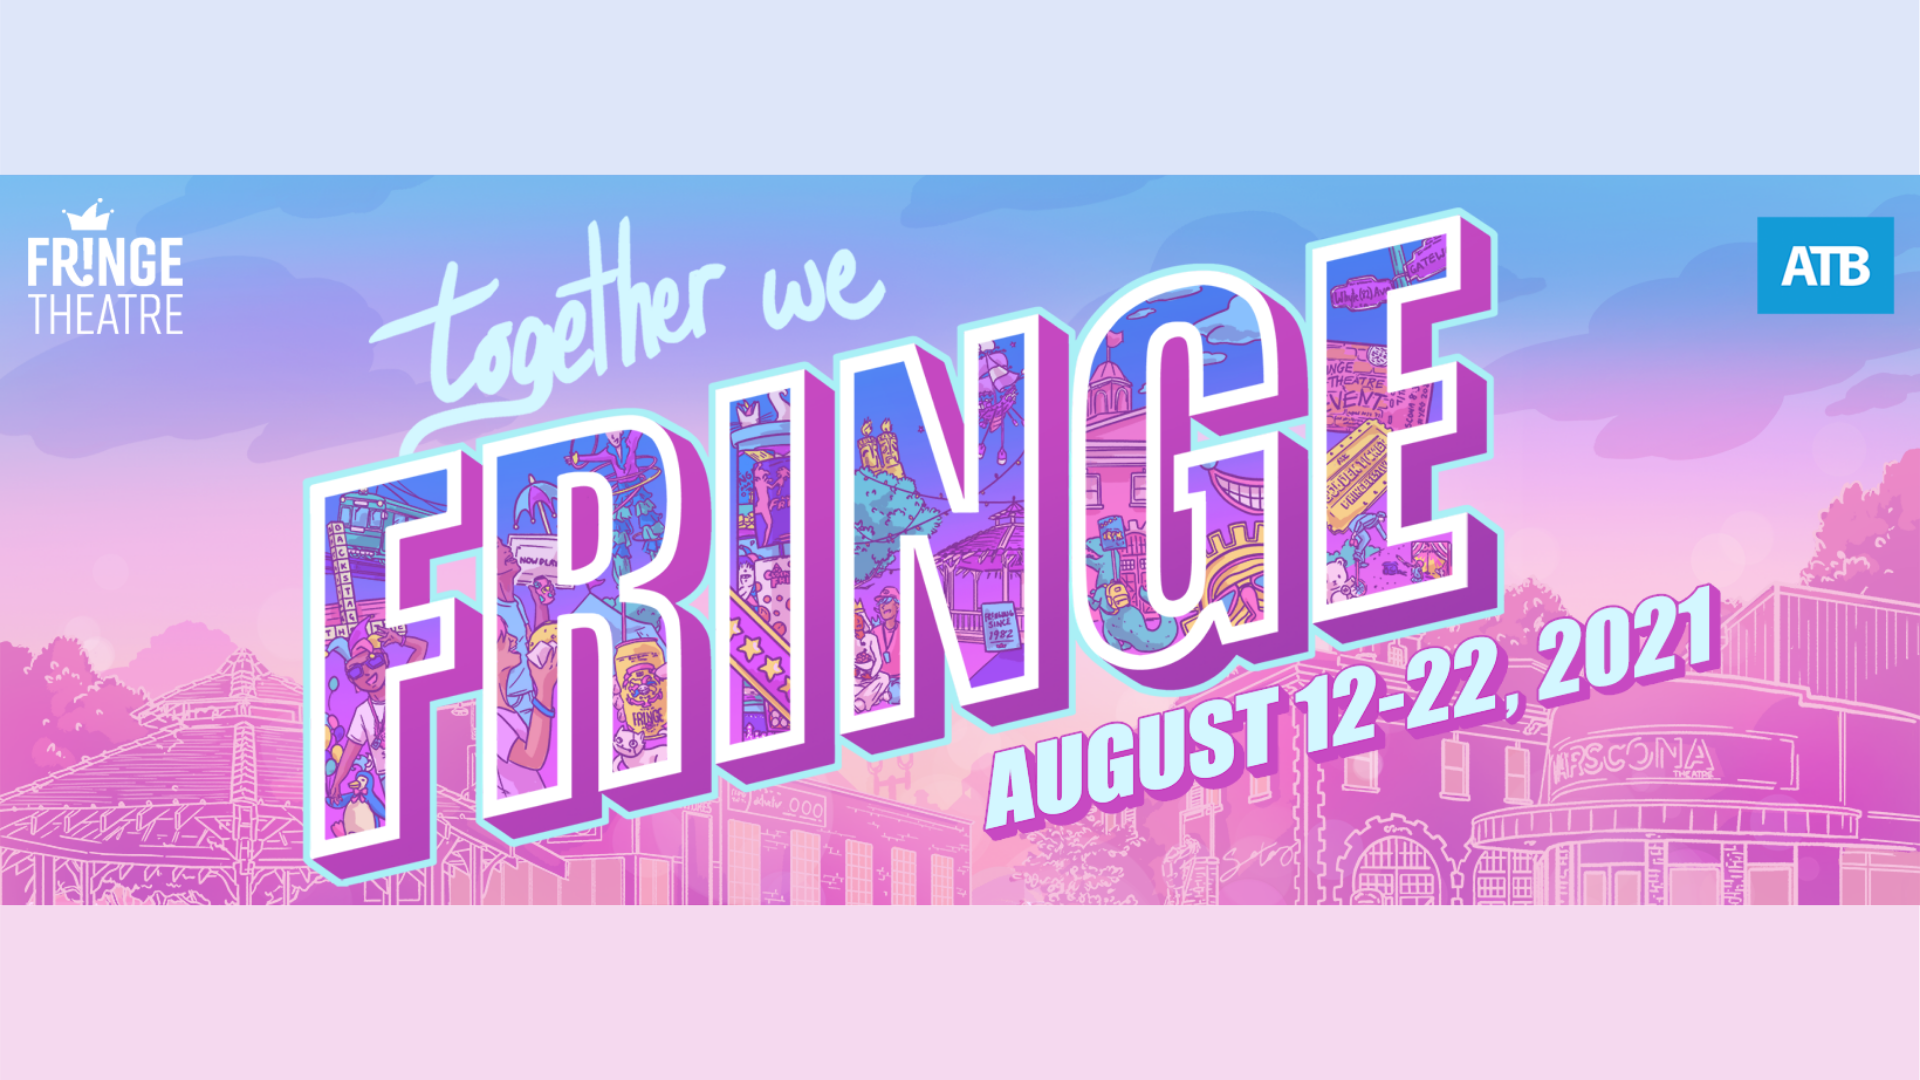 """Illustrated buildings from Old Strathcona behind text that reads """"Together We Fringe August 12-22"""""""